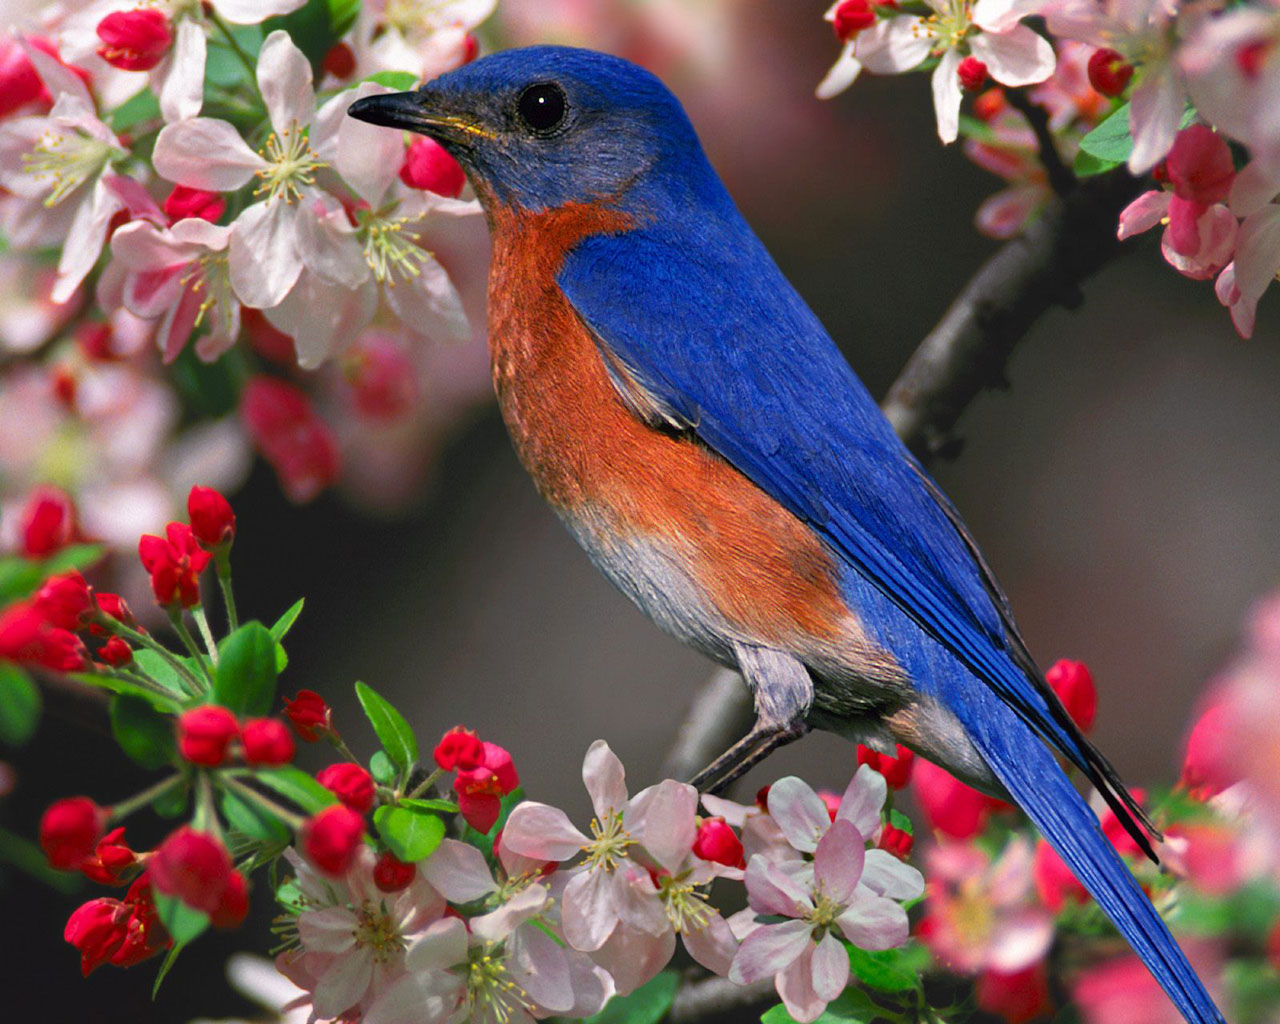 http://4.bp.blogspot.com/-26QgQ7Pg0gI/UR5JEemHfDI/AAAAAAAADuo/HygwT32mevw/s1600/Beautiful-Birds-Wallpapers-.jpg